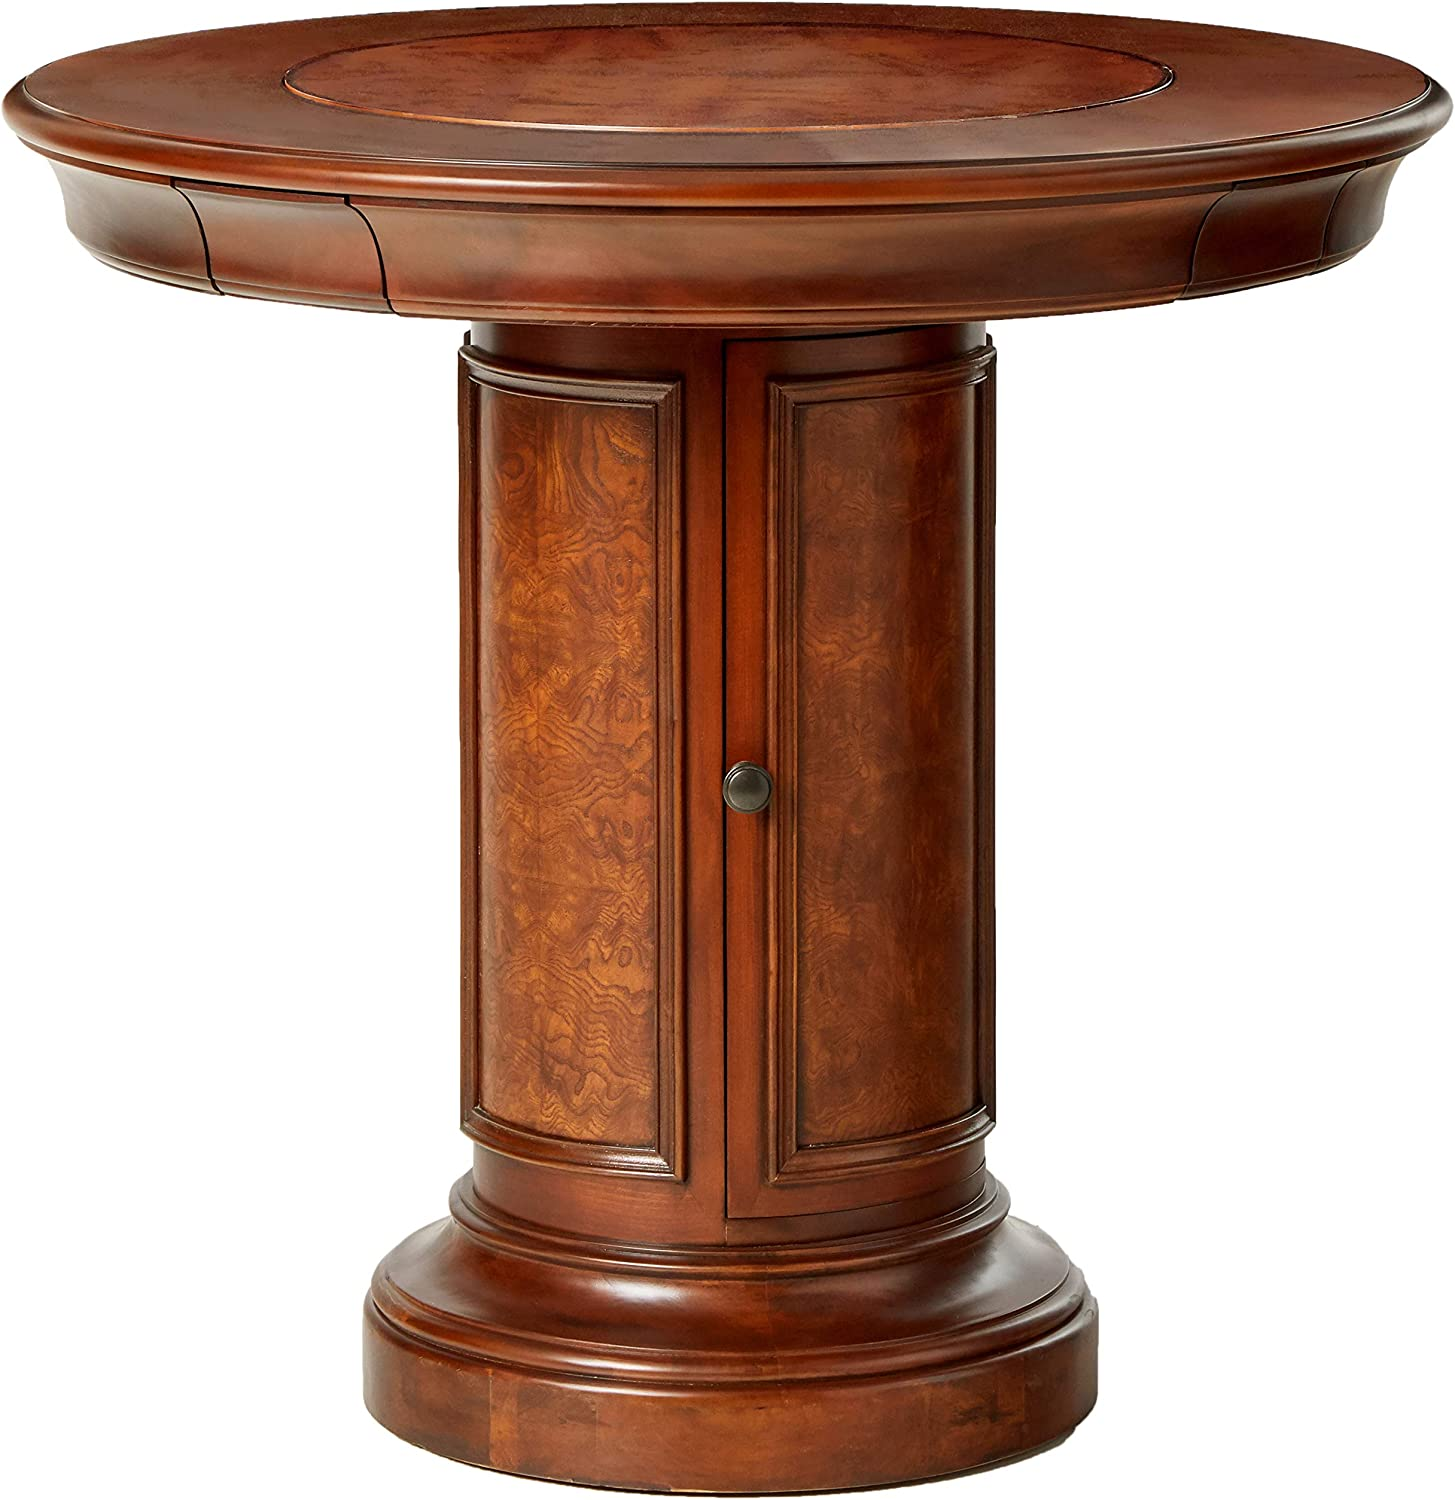 Howard Miller 699-010 Ithaca Pub Table by